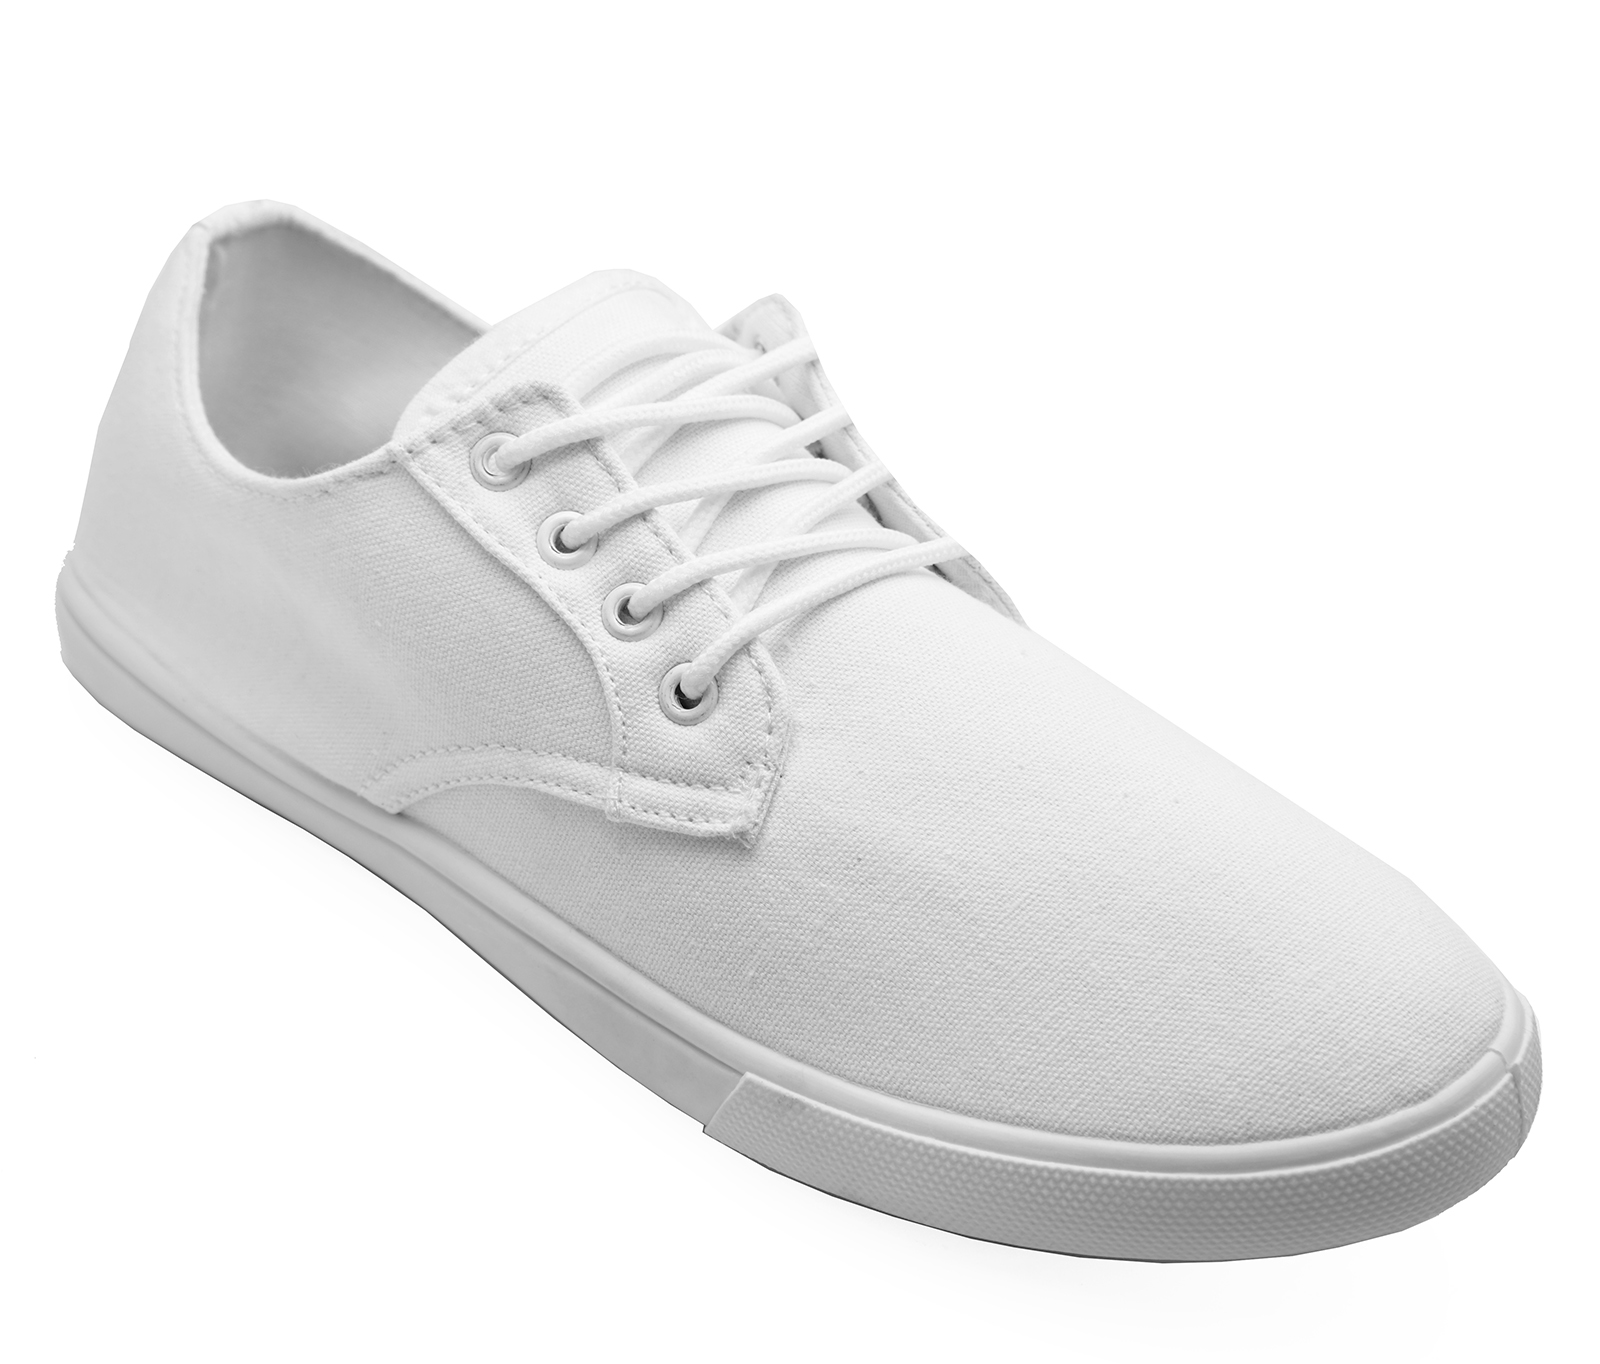 MENS-LACE-UP-WHITE-CANVAS-FLAT-TRAINER-PLIMSOLL-PUMPS-CASUAL-SHOES-SIZES-6-12 thumbnail 11